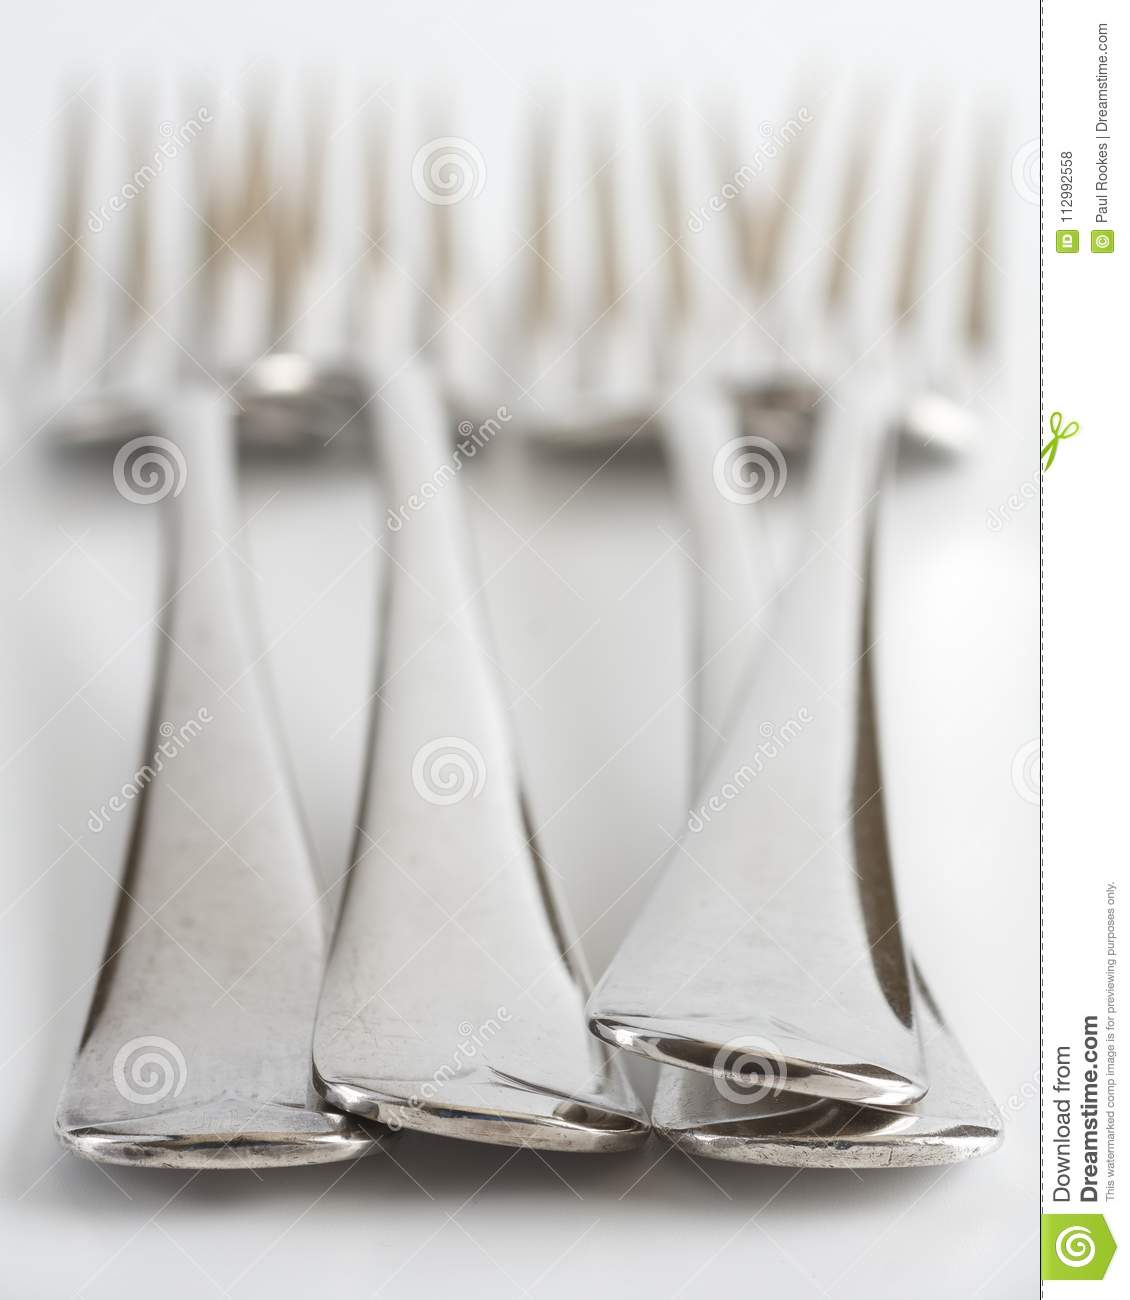 Forks on the table, selective focus